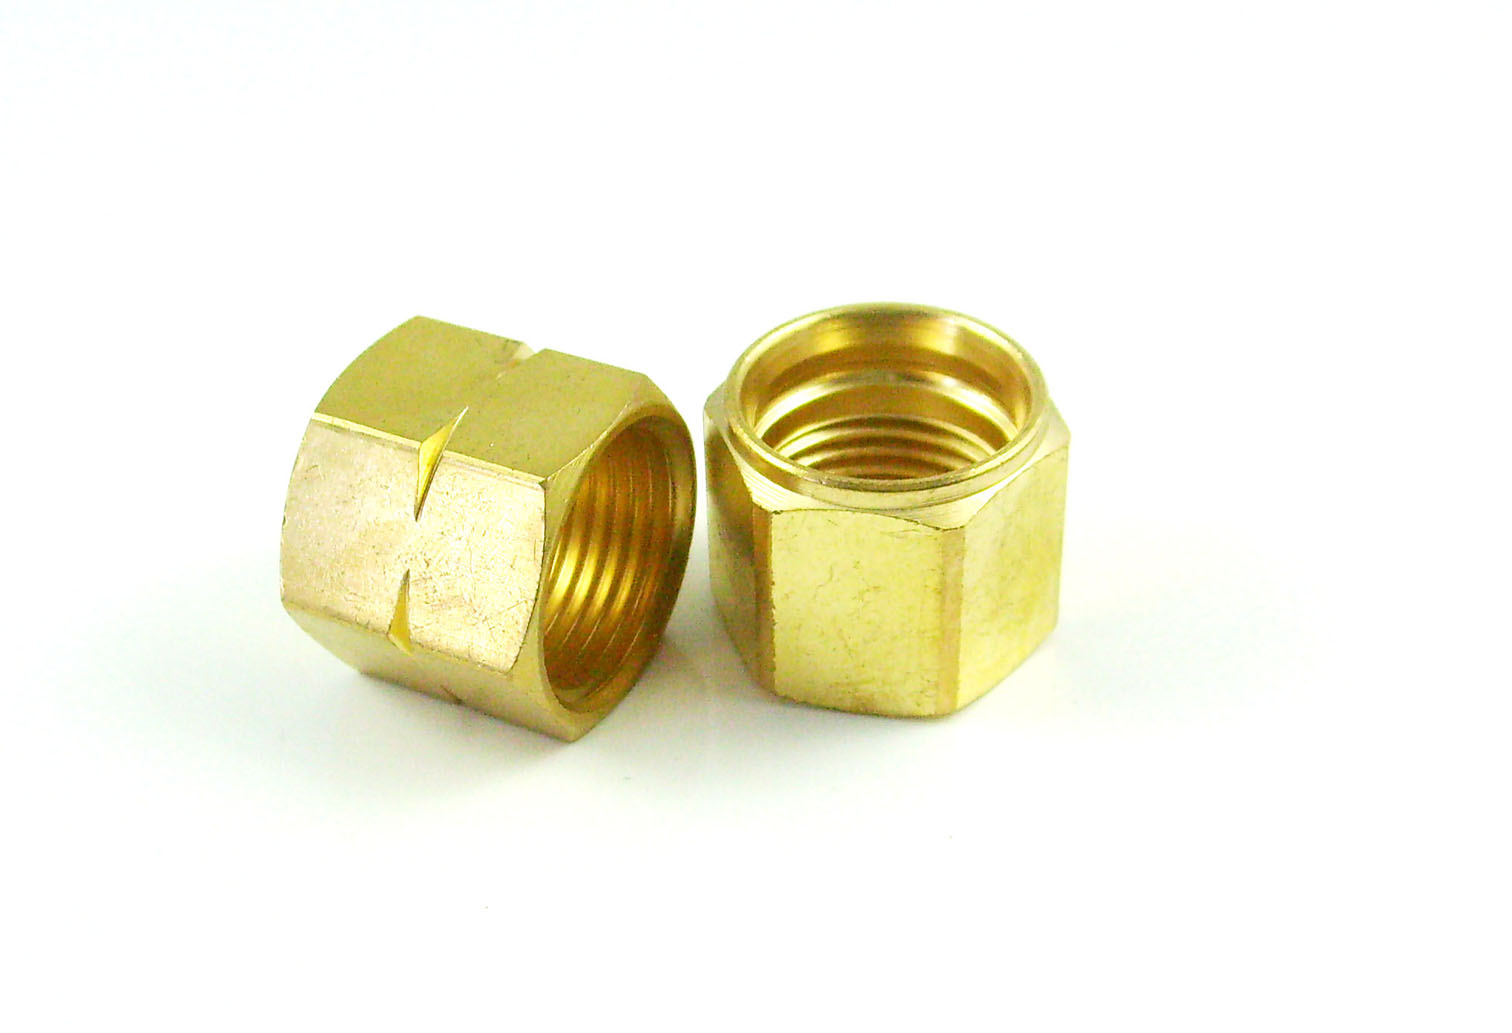 chrome plated precision brass joint component